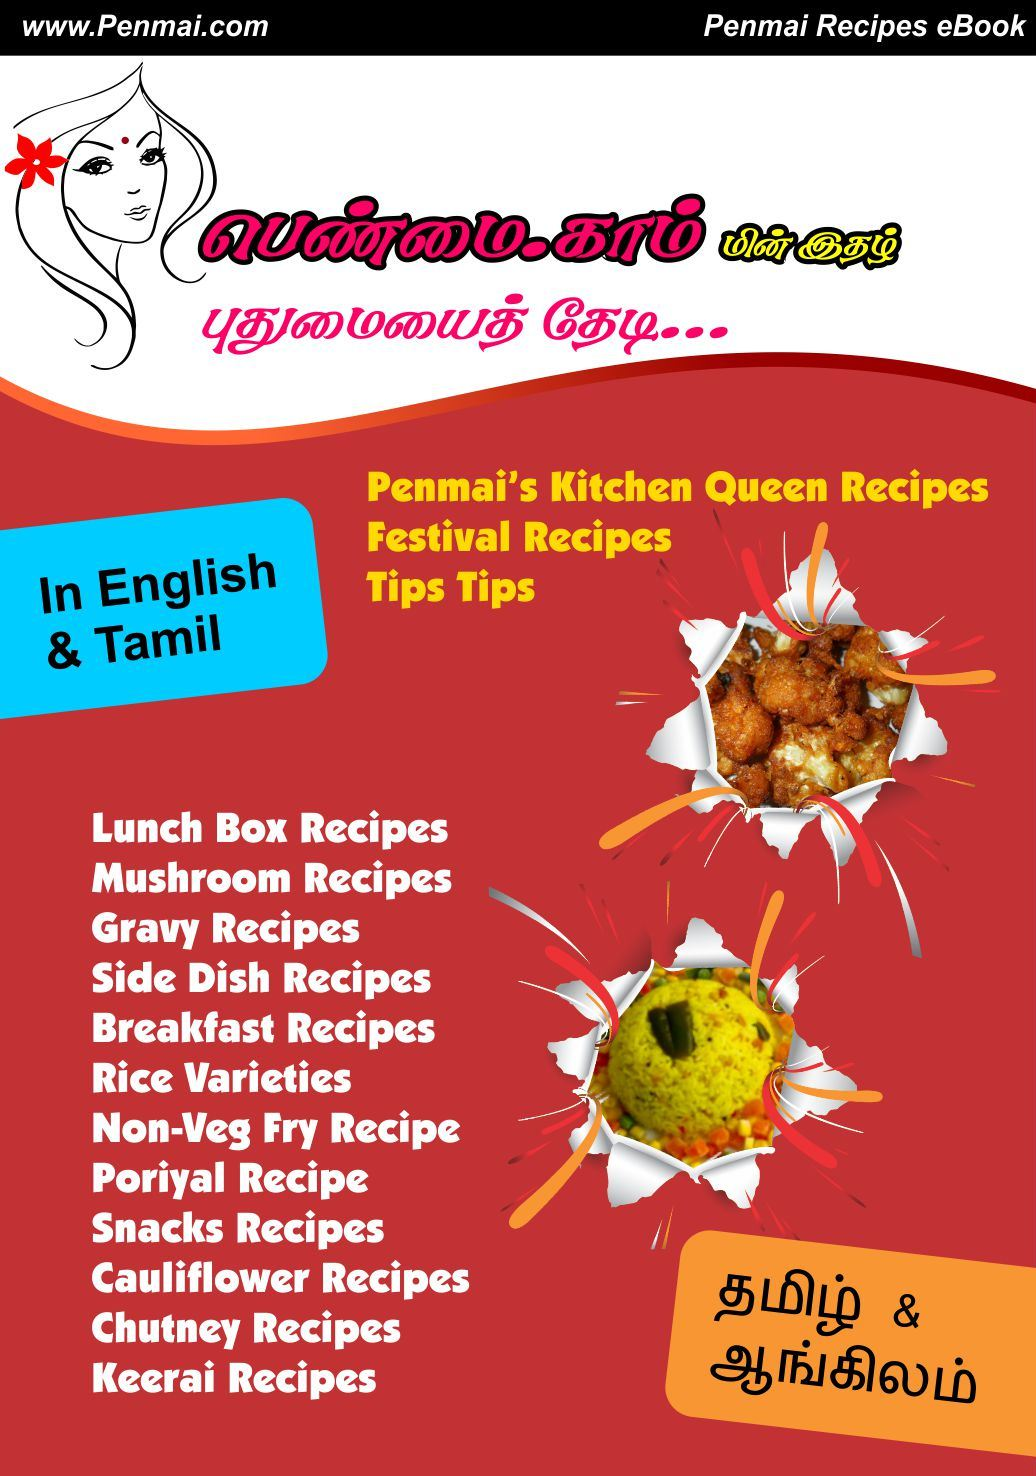 Name:  Final_Recipes_eBook_Cover_Page.jpg